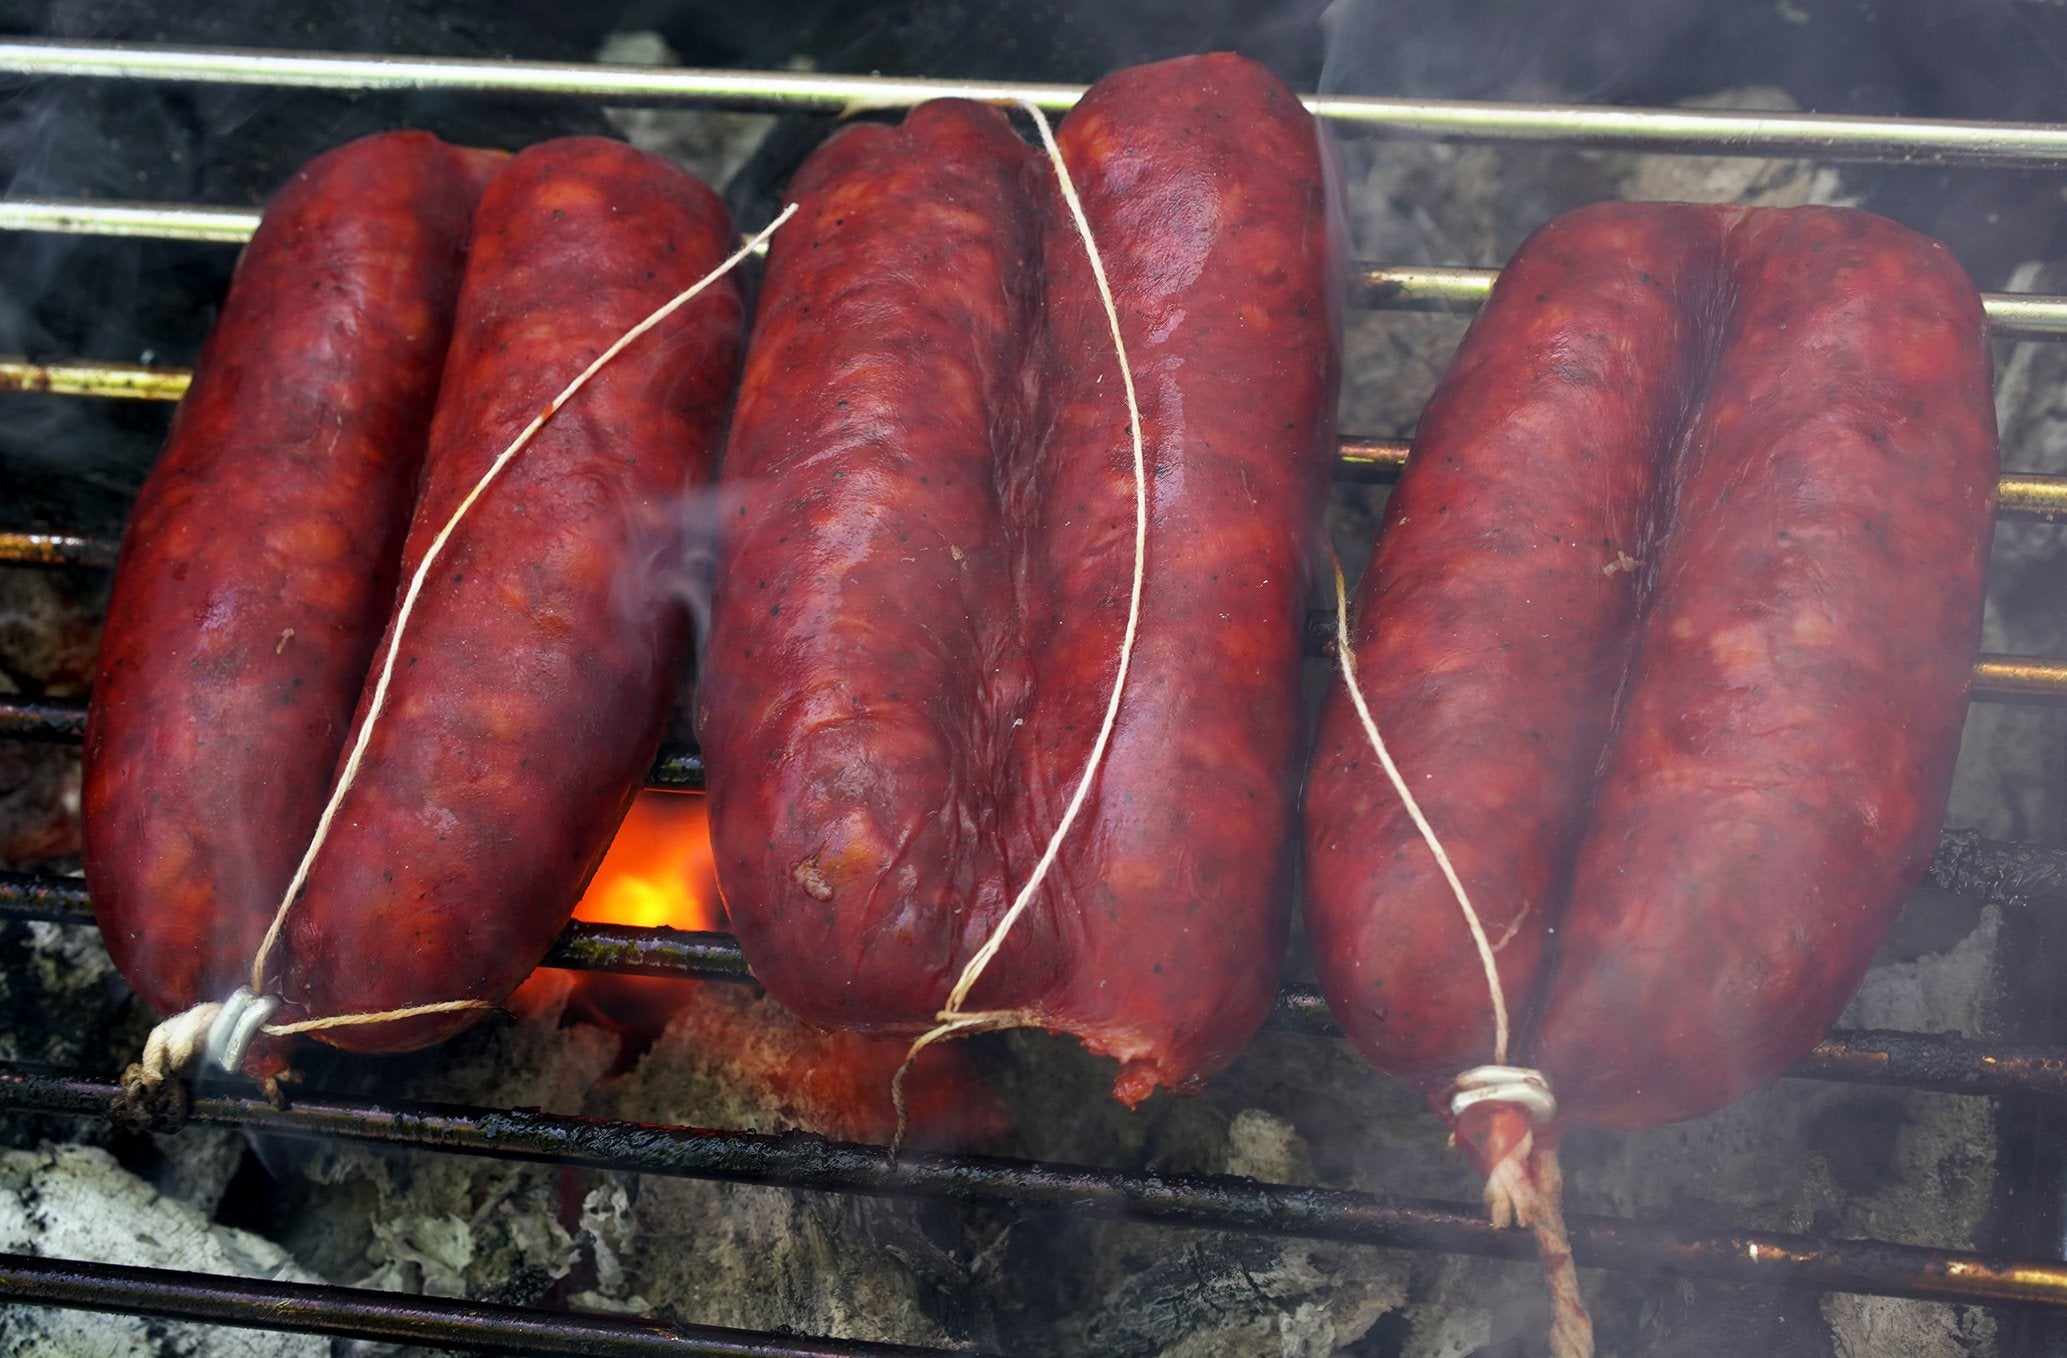 Chorizo (pack of 4) for sale - Parson's Nose